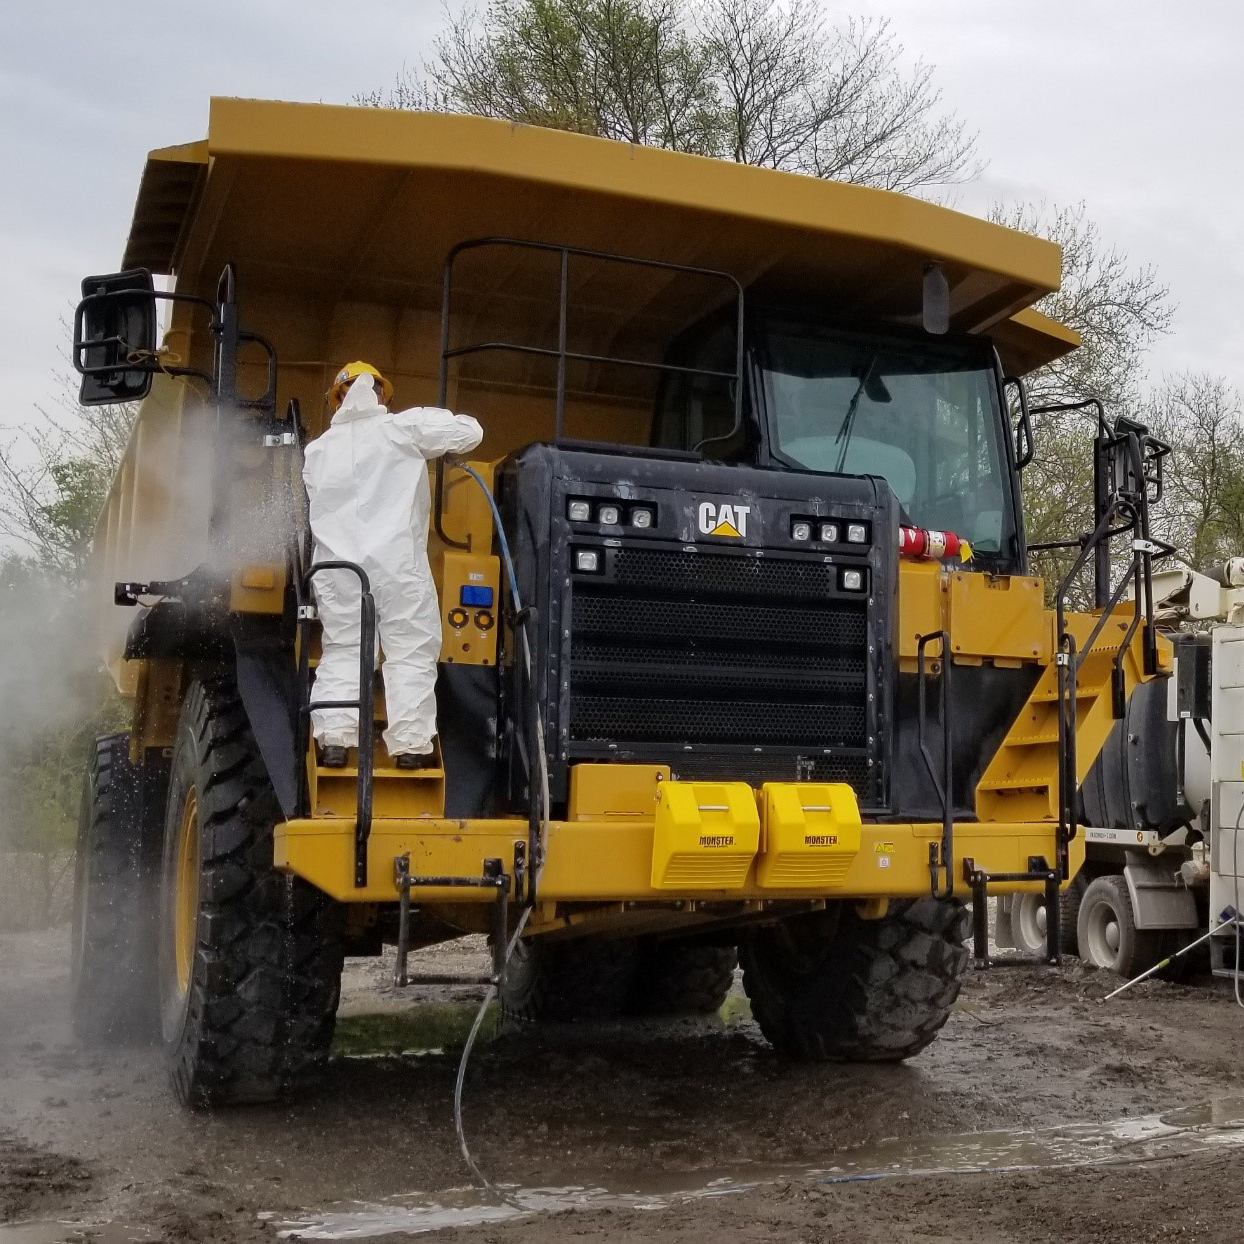 Steam cleaning heavy equipment